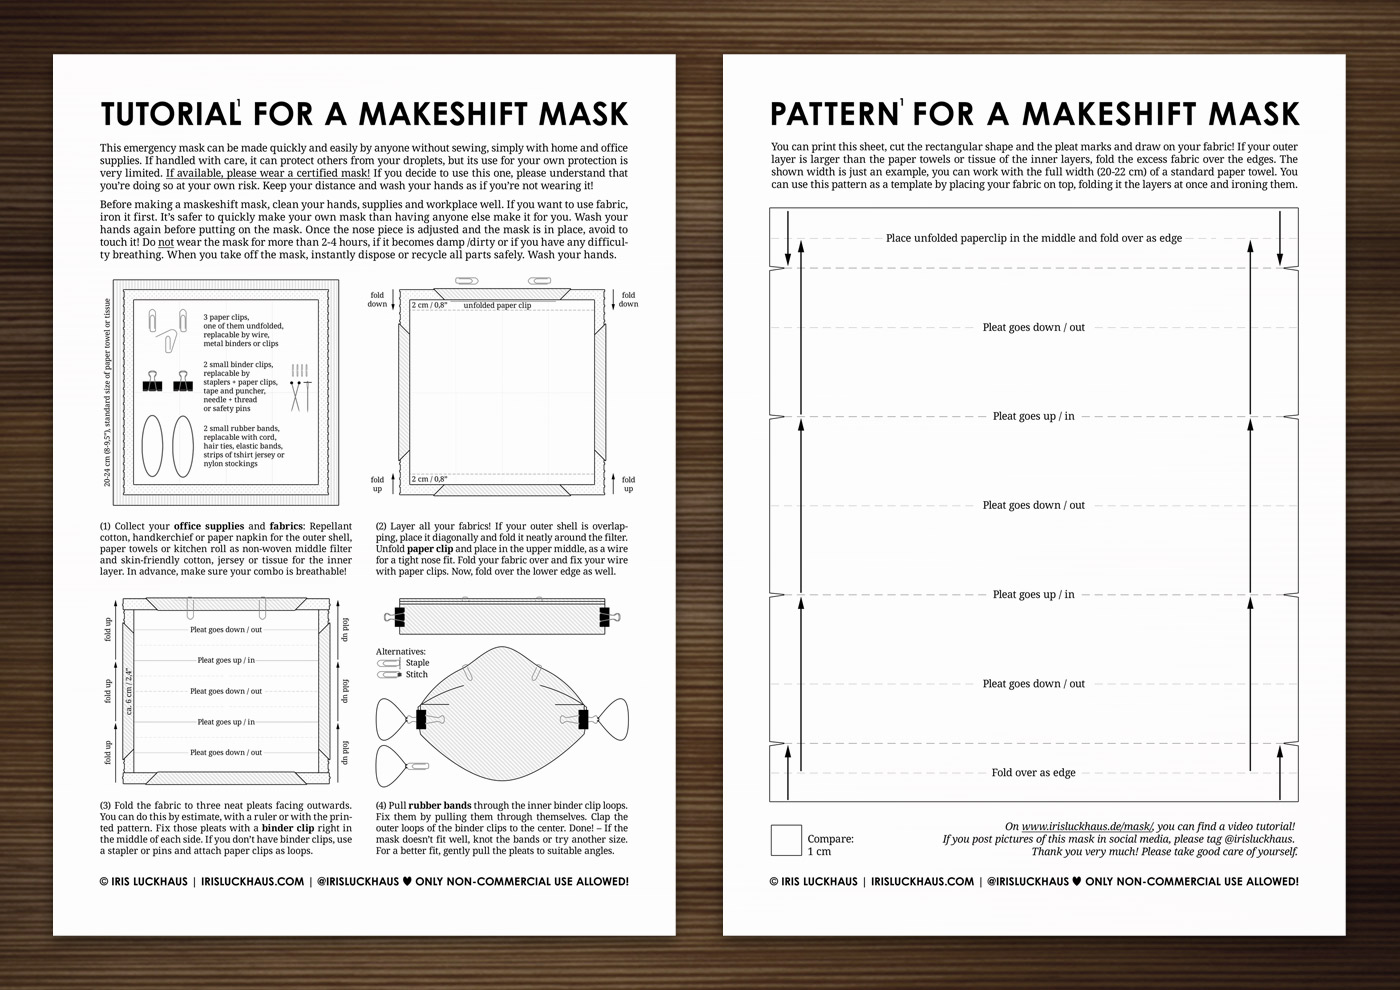 DIY Instructions for an Emergency Maskeshift Mask